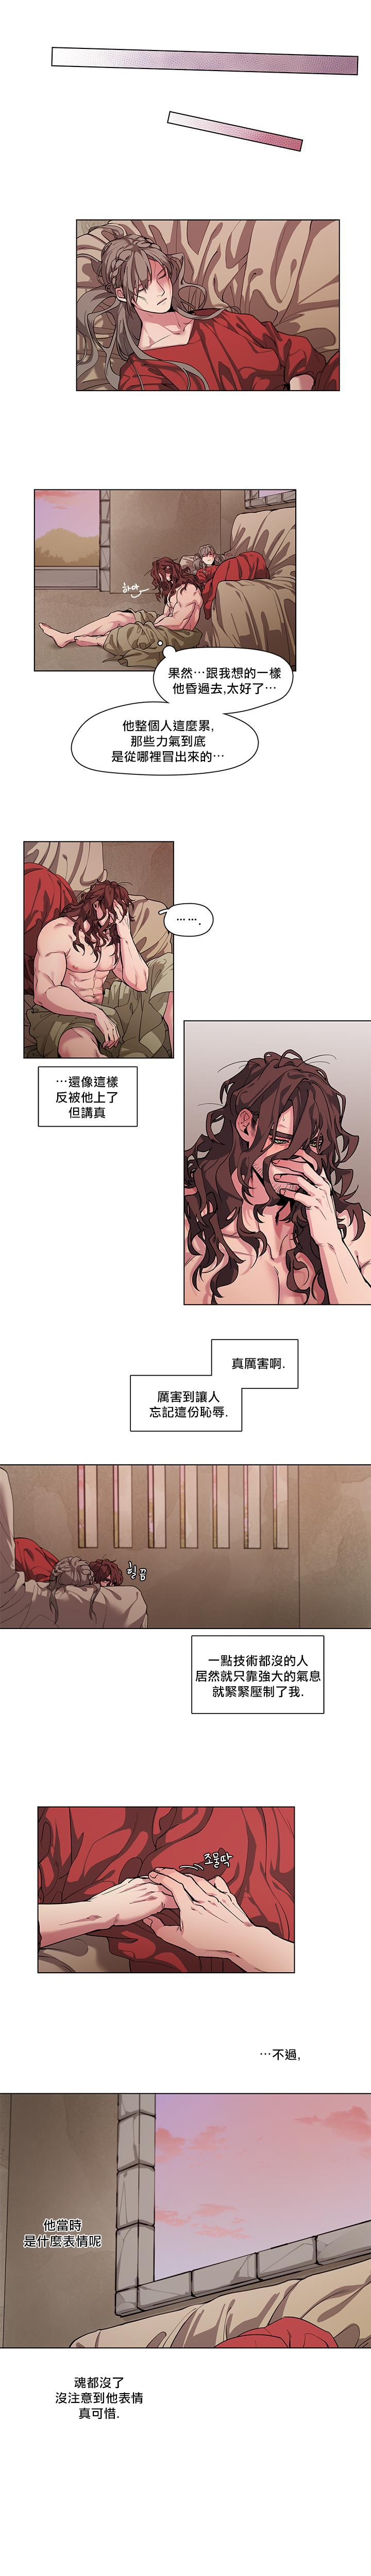 The Warrior and the Deity   勇者与山神 Ch. 2-6+加笔1+加笔2 22